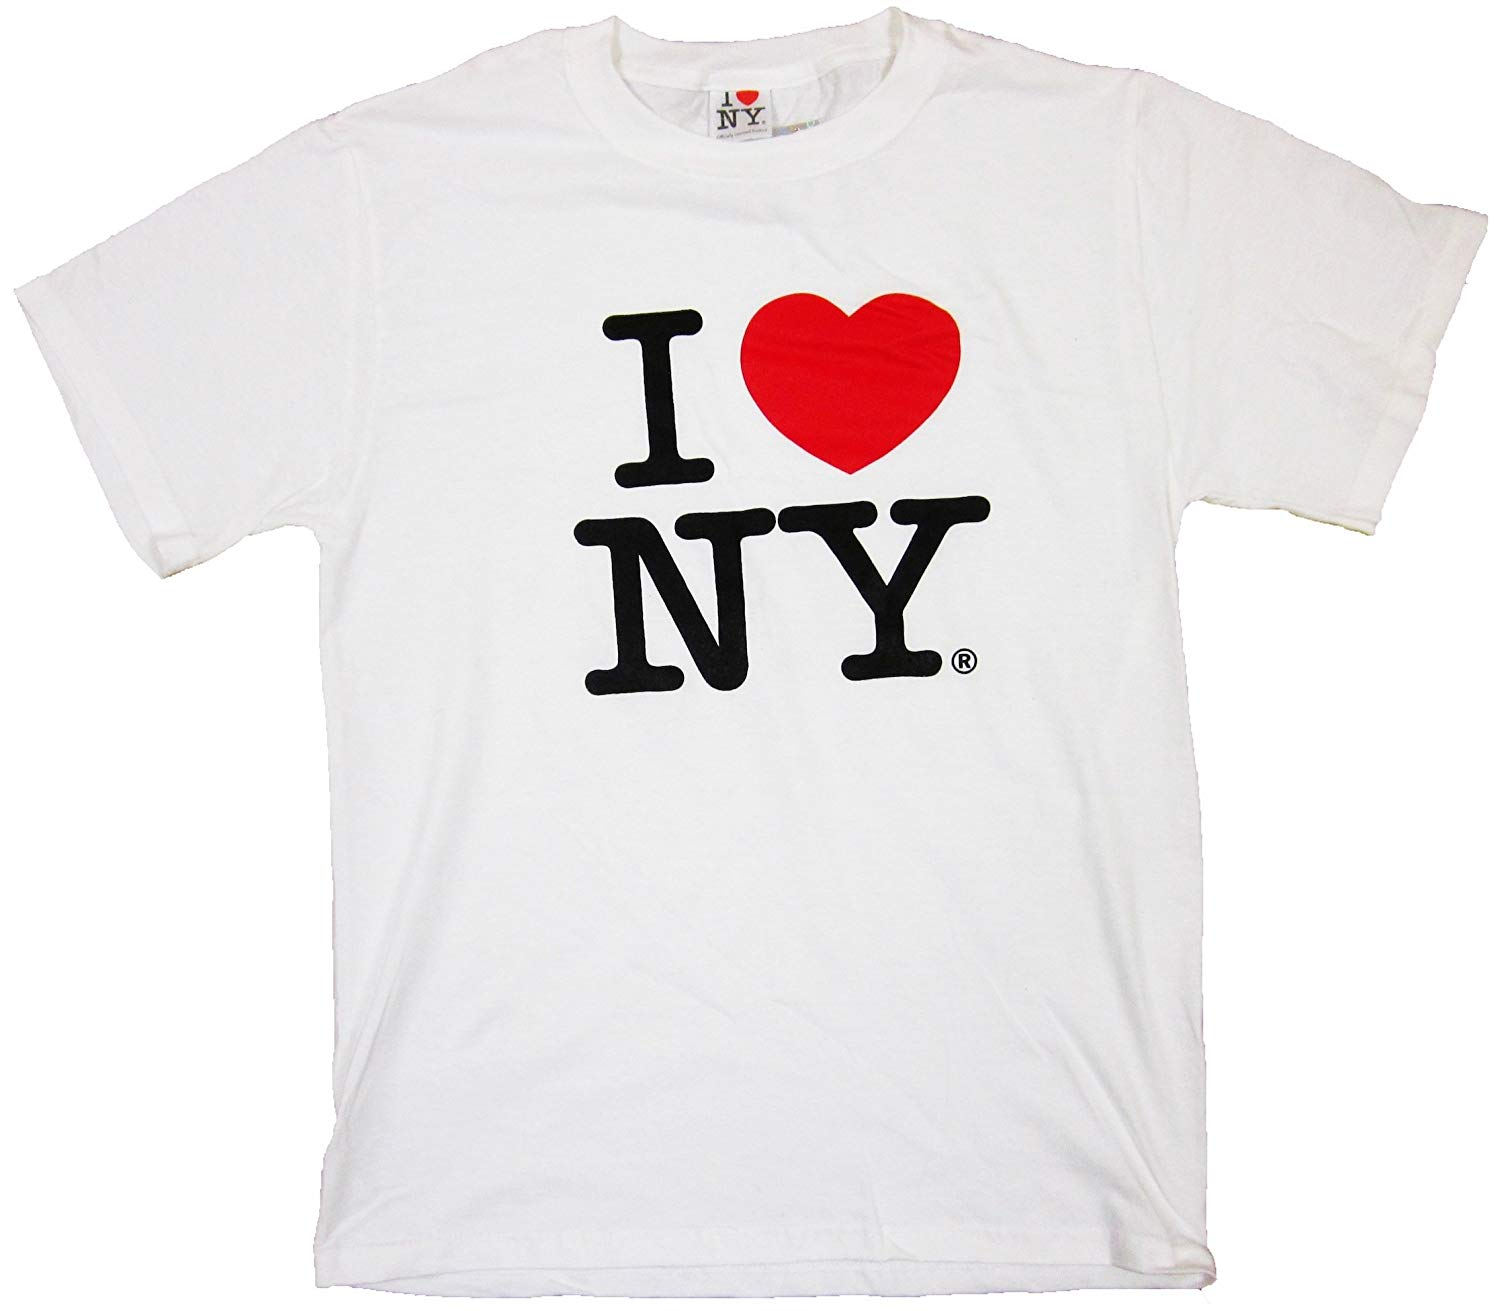 10 best Selling T-Shirts Of All Time!